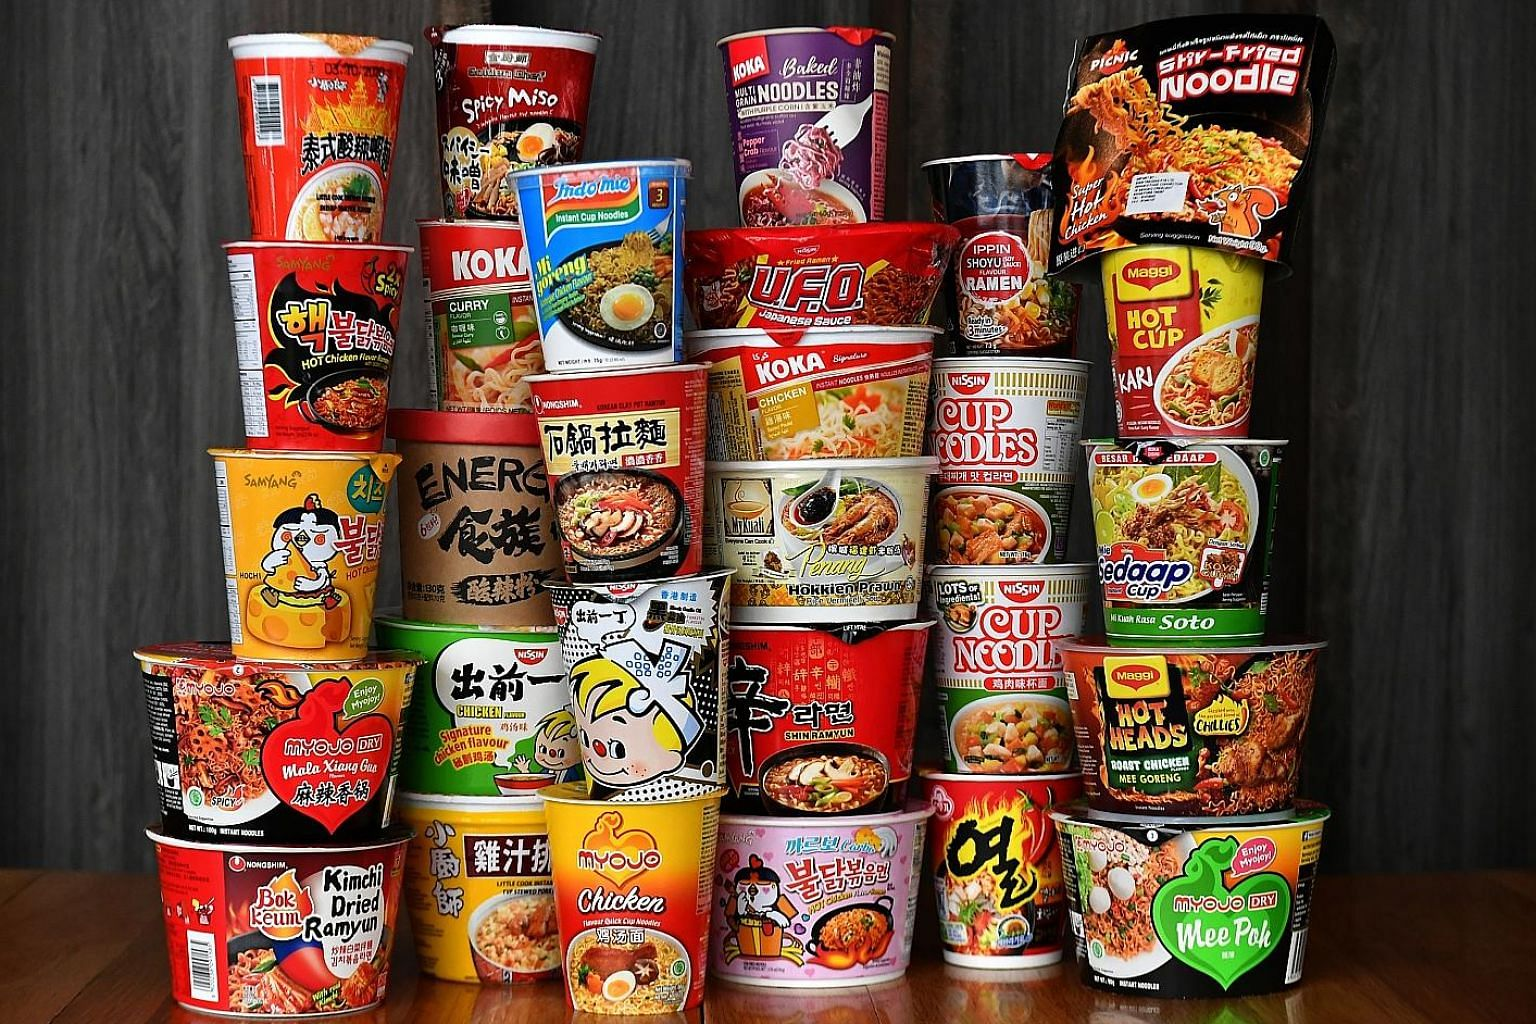 The Sunday Times did a taste test of 29 varieties of cup noodles from different brands, which included flavours that ran from basic - such as chicken - to exotic ones like Korean army stew, hot chicken cheese and mala xiang guo.